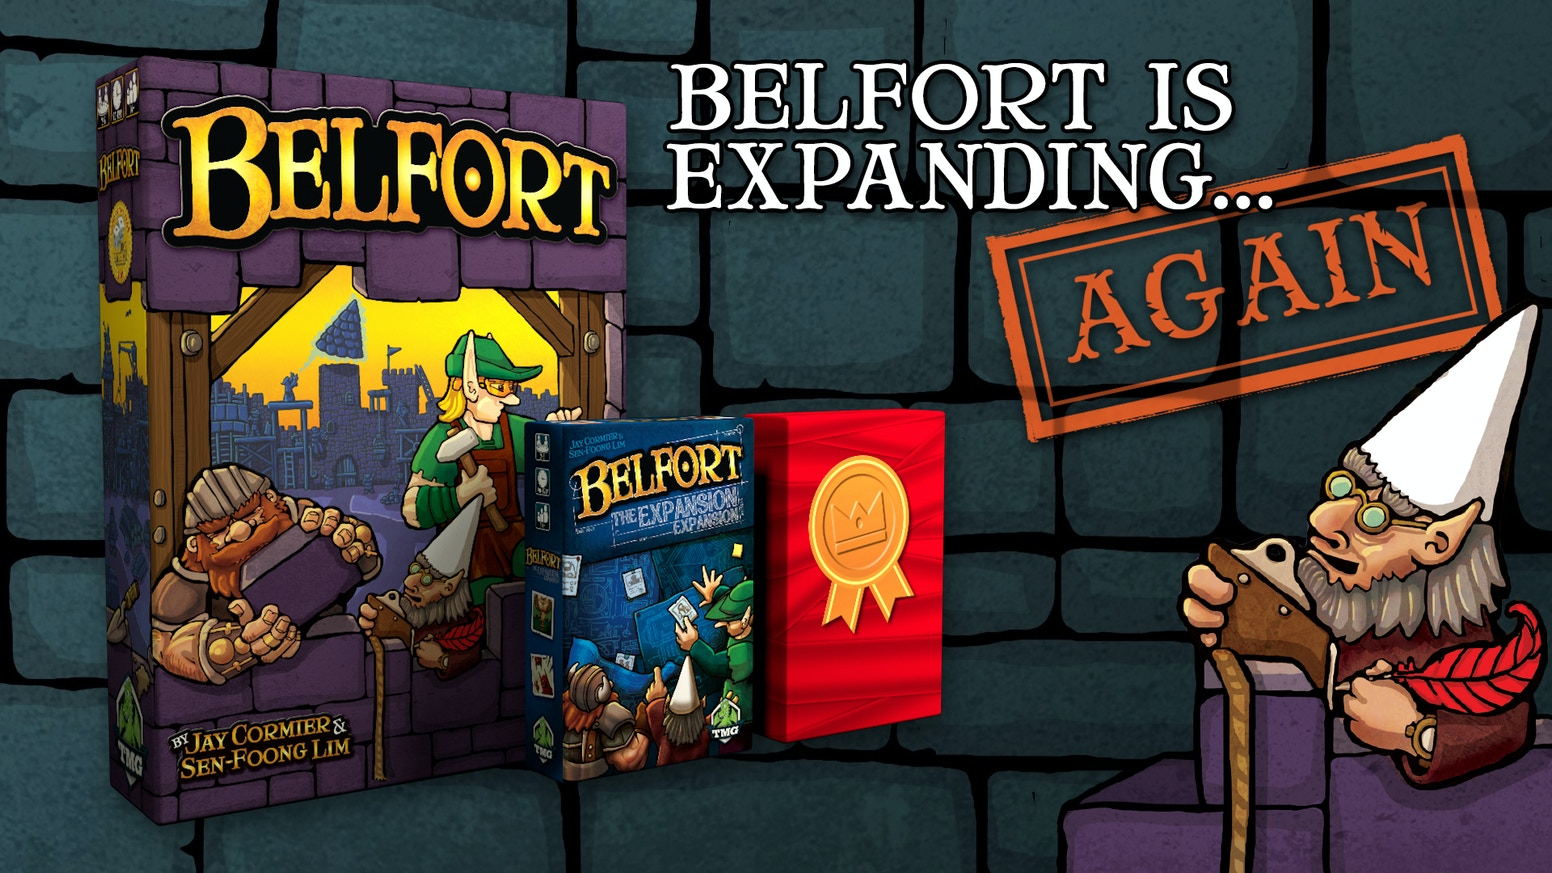 Belfort has been out of print too long - so now it's back with BRAND NEW content!